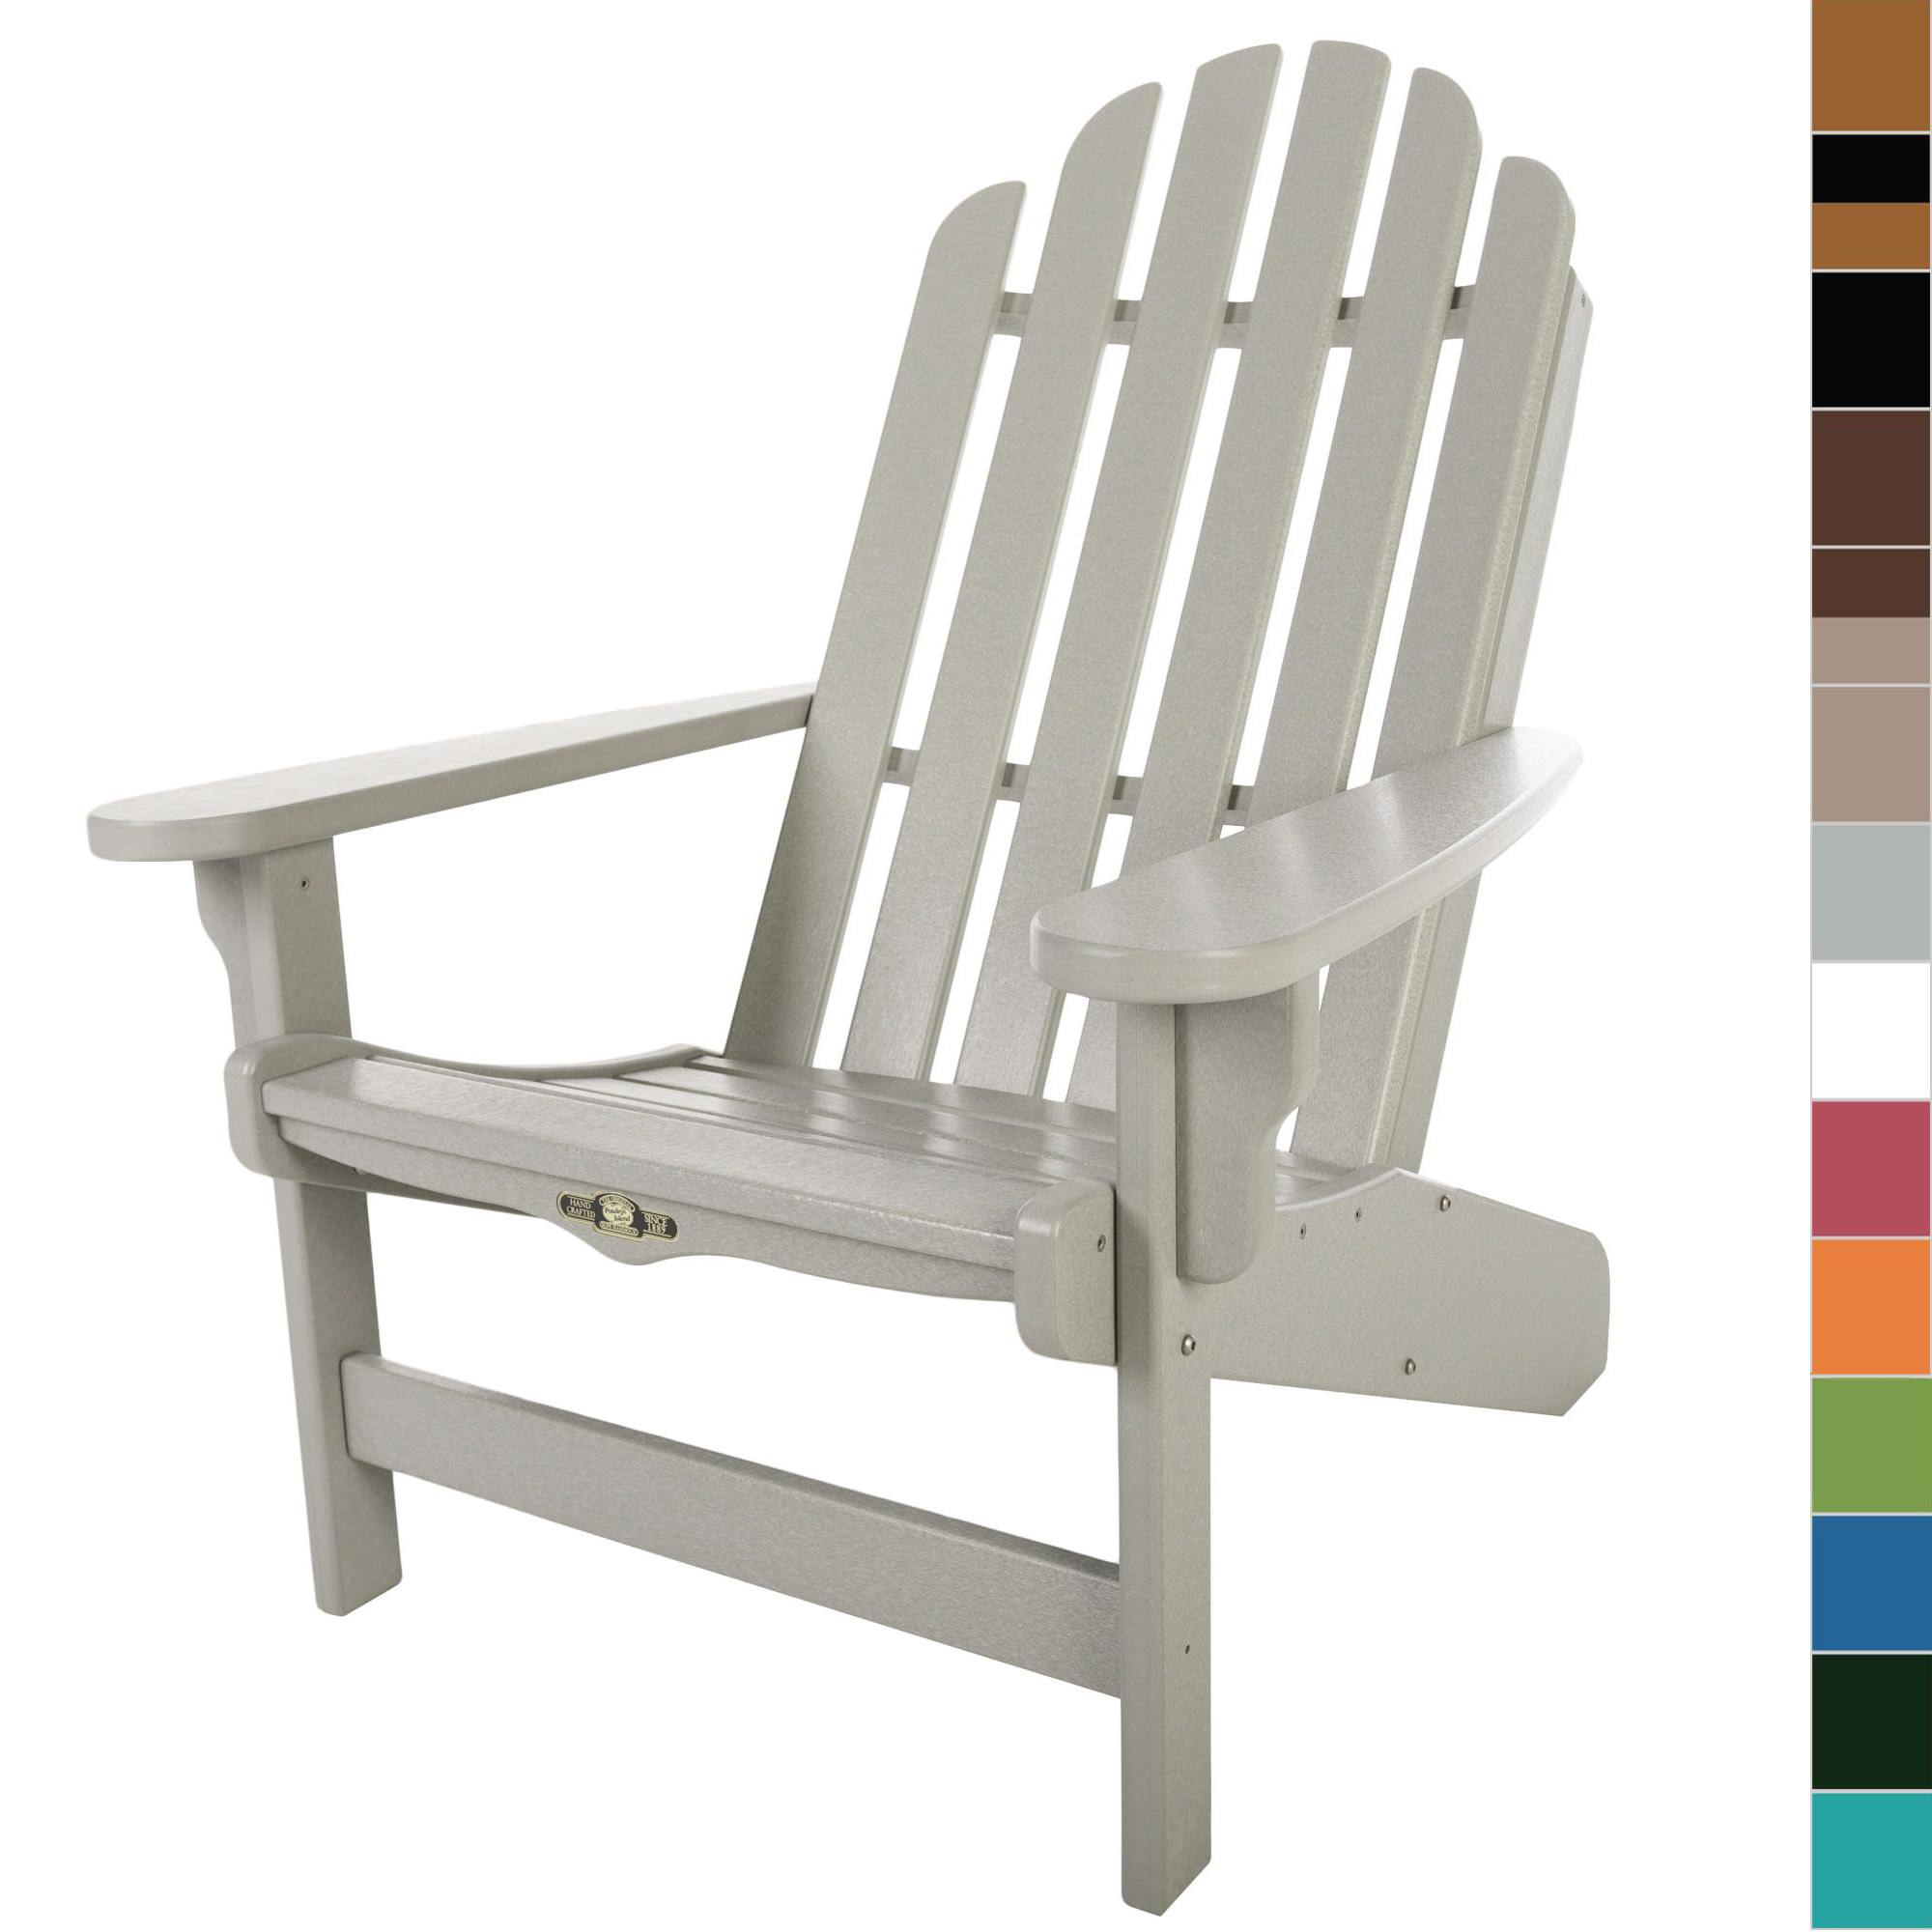 unpainted beautiful tool and twin outsidemodern chair outdoor chairs equipment classic fir adirondack northern pack wood